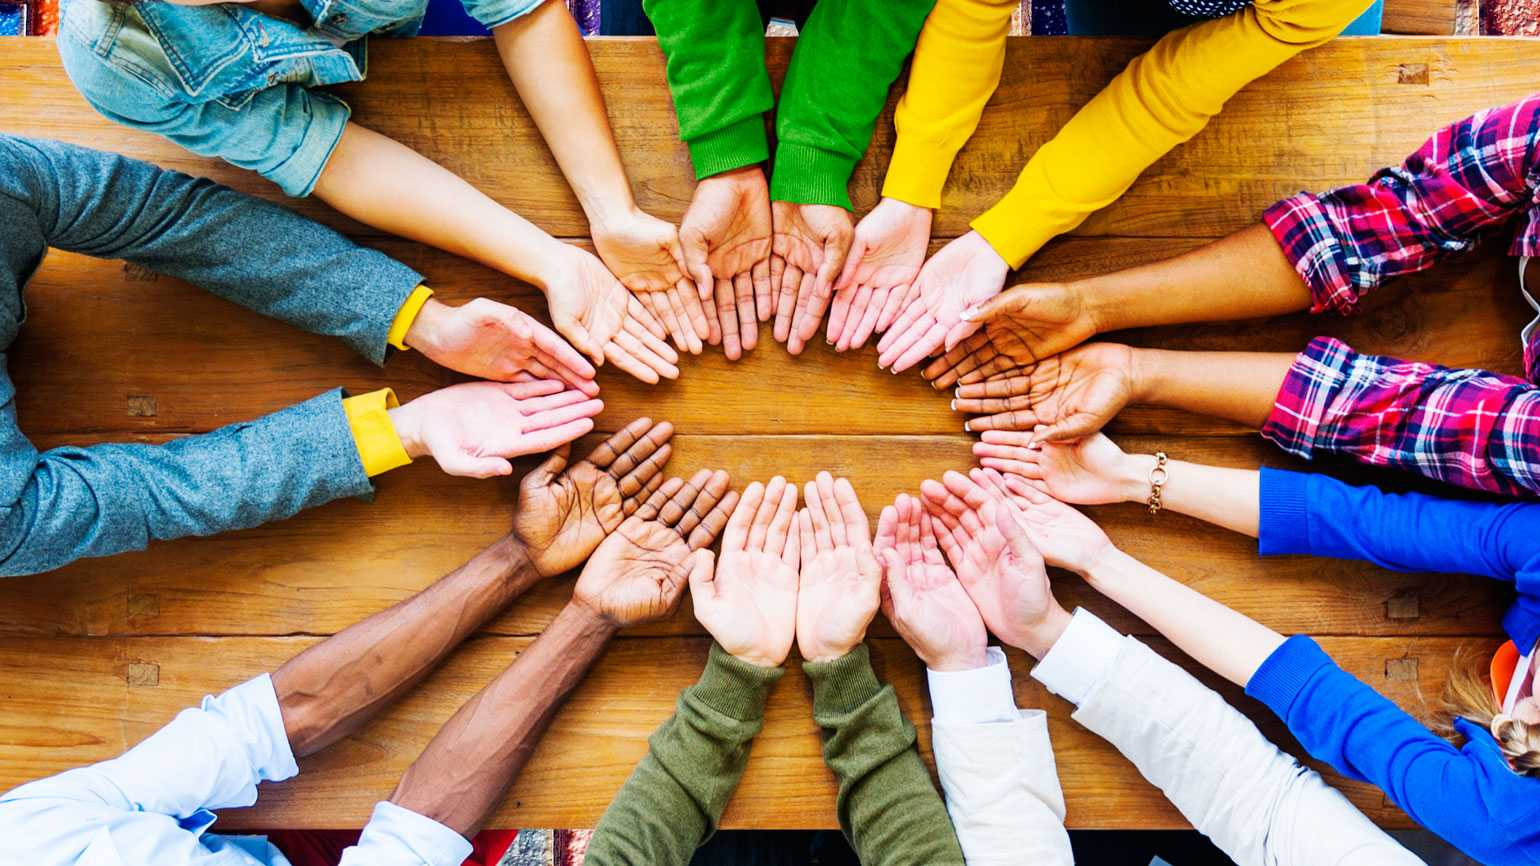 A circle of hands of people of different cultures displays a spirit of generosity